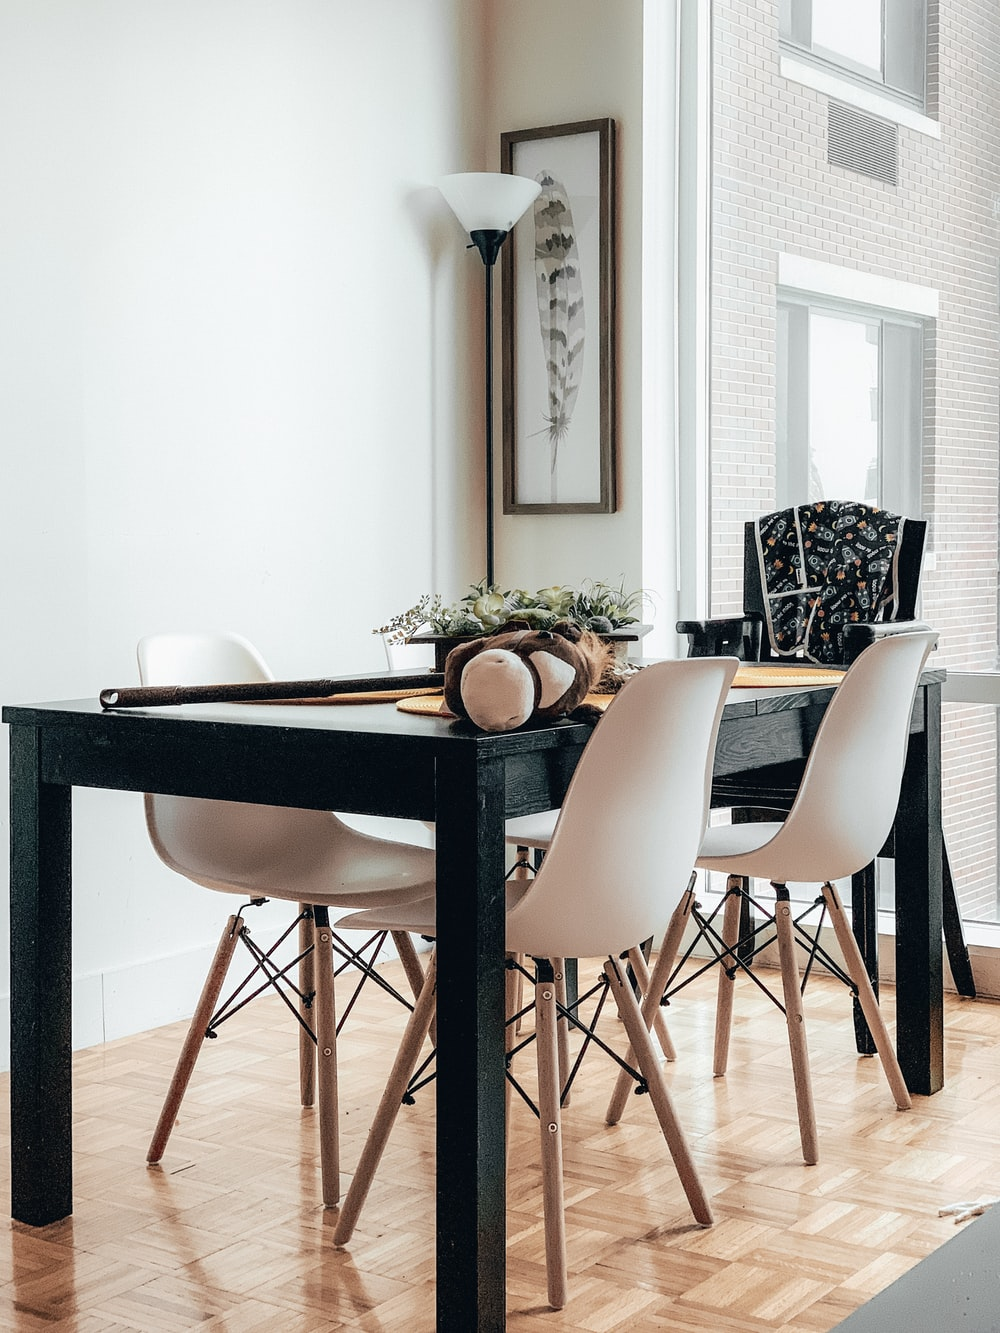 Magnificent Brown Wooden Table Photo Free Furniture Image On Unsplash Gmtry Best Dining Table And Chair Ideas Images Gmtryco